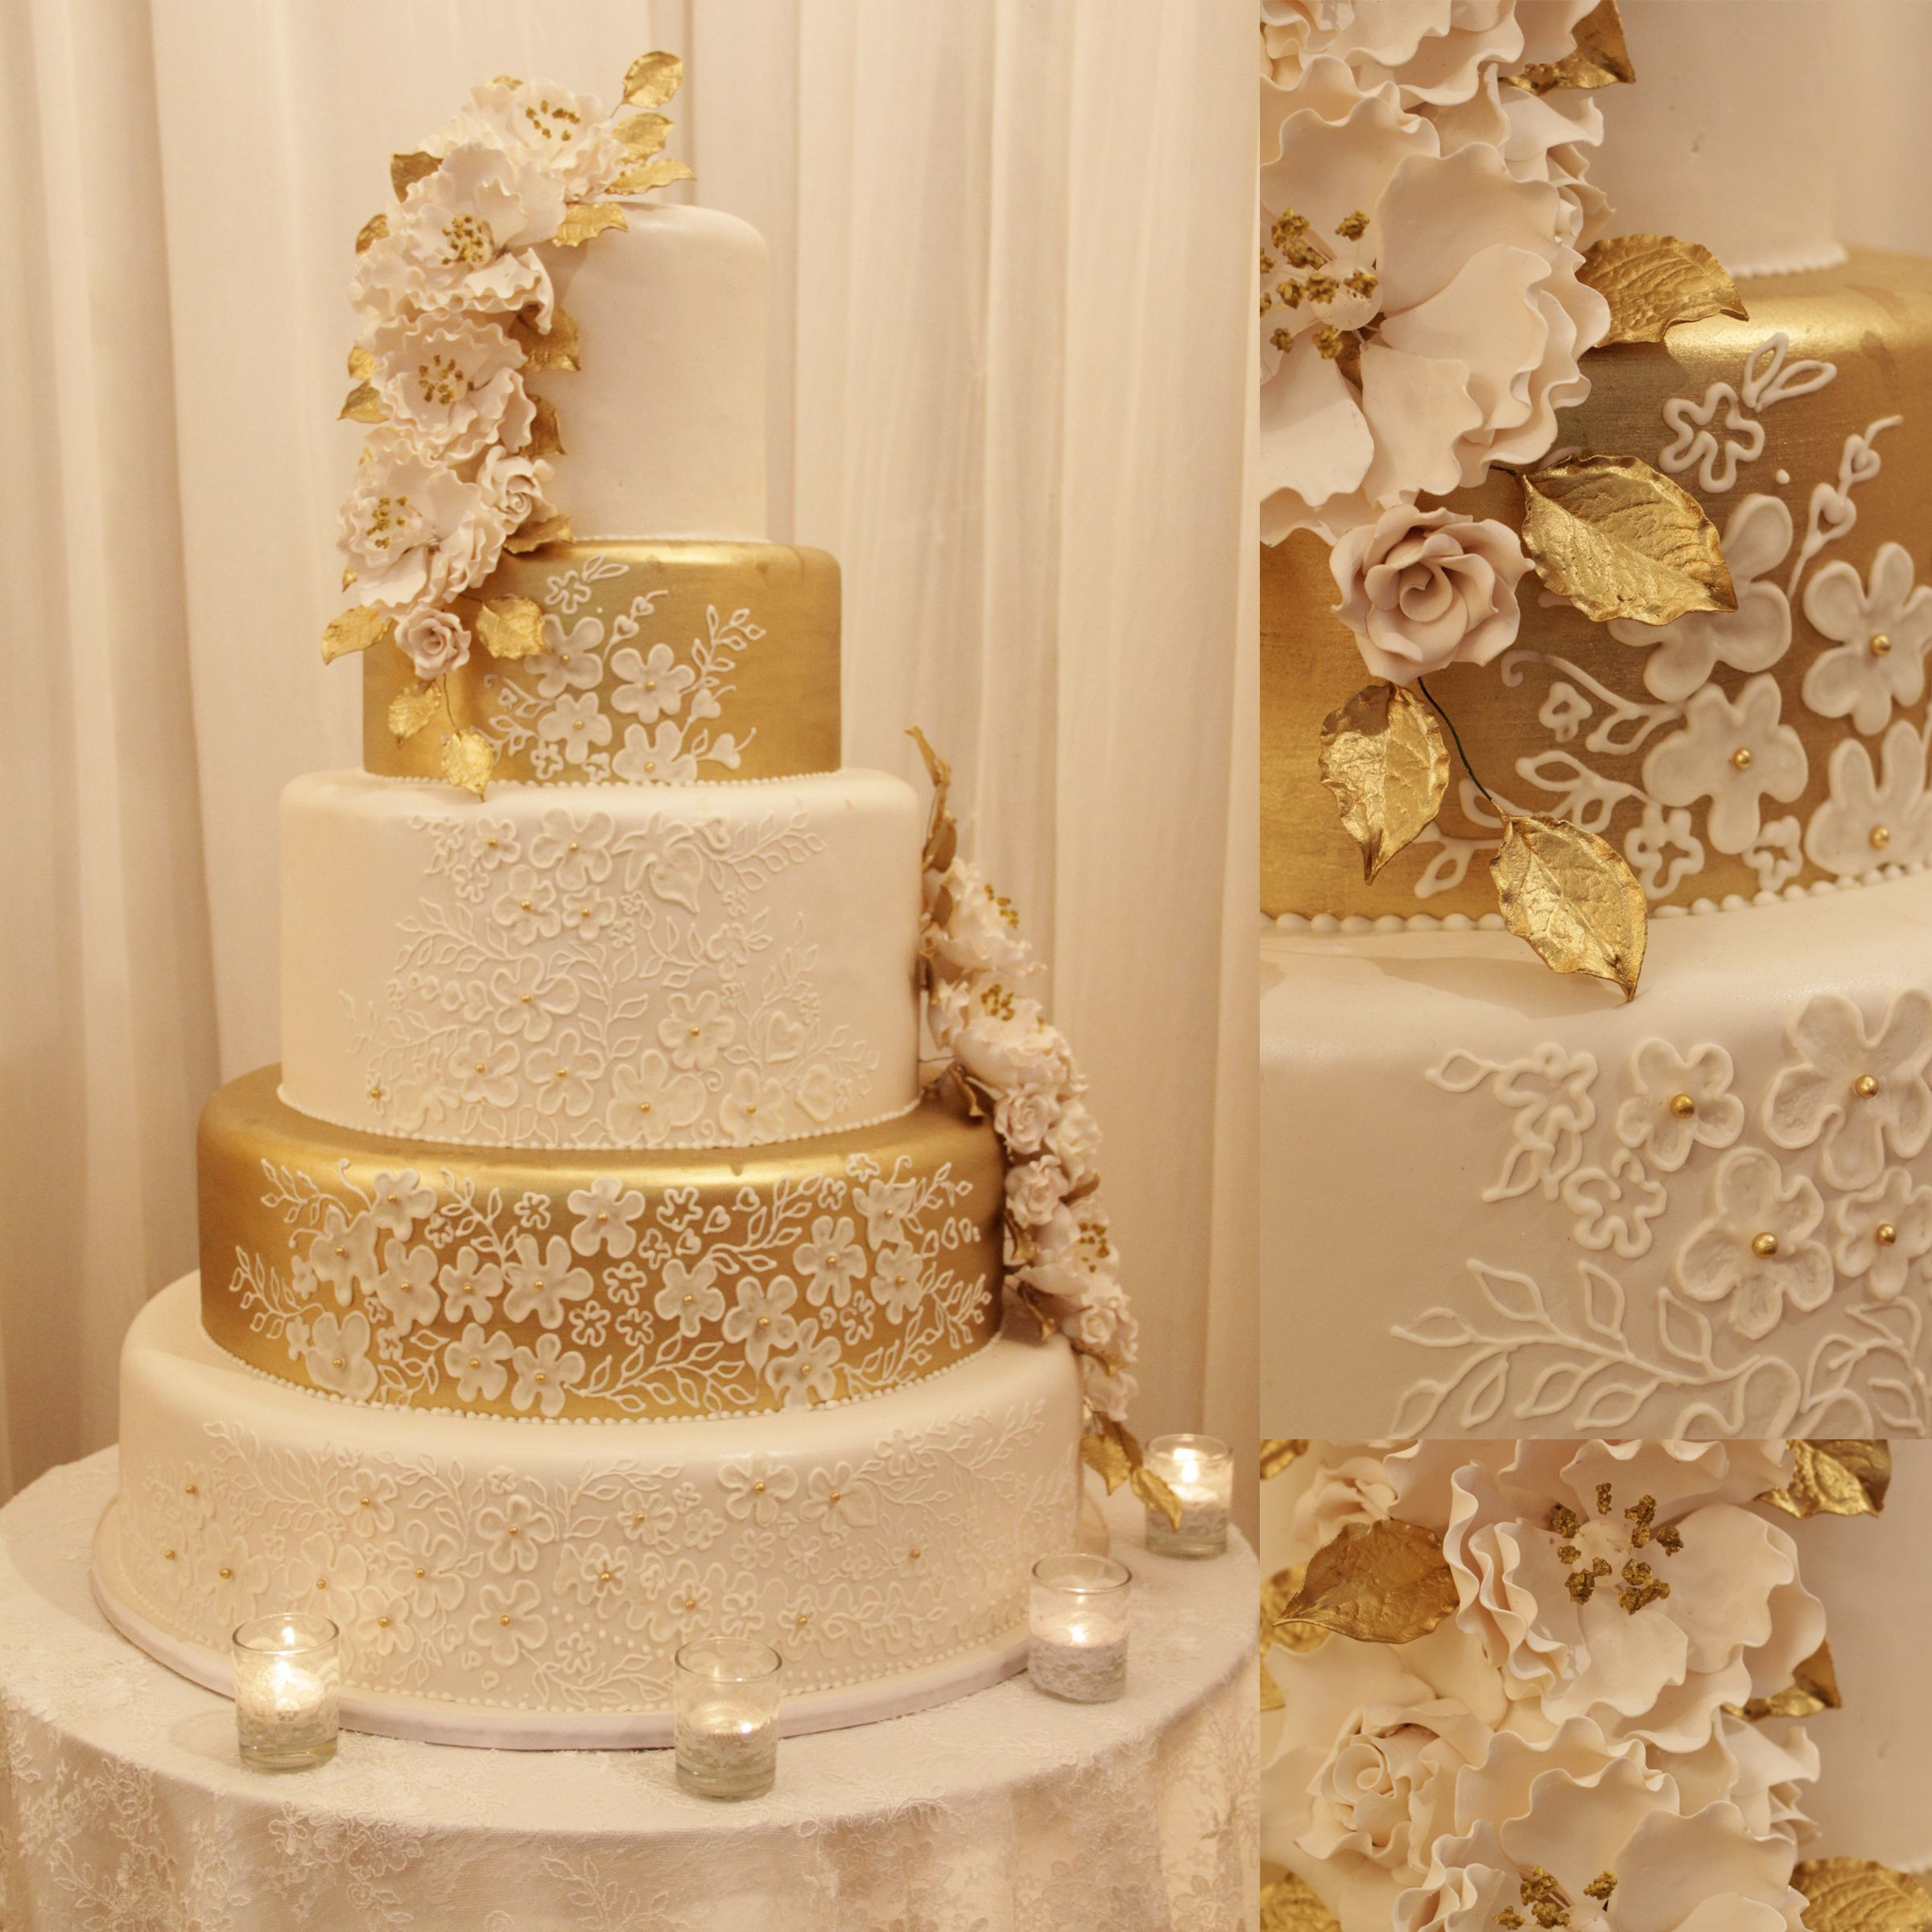 Wedding Cake 101: An Introduction To Wedding Cakes